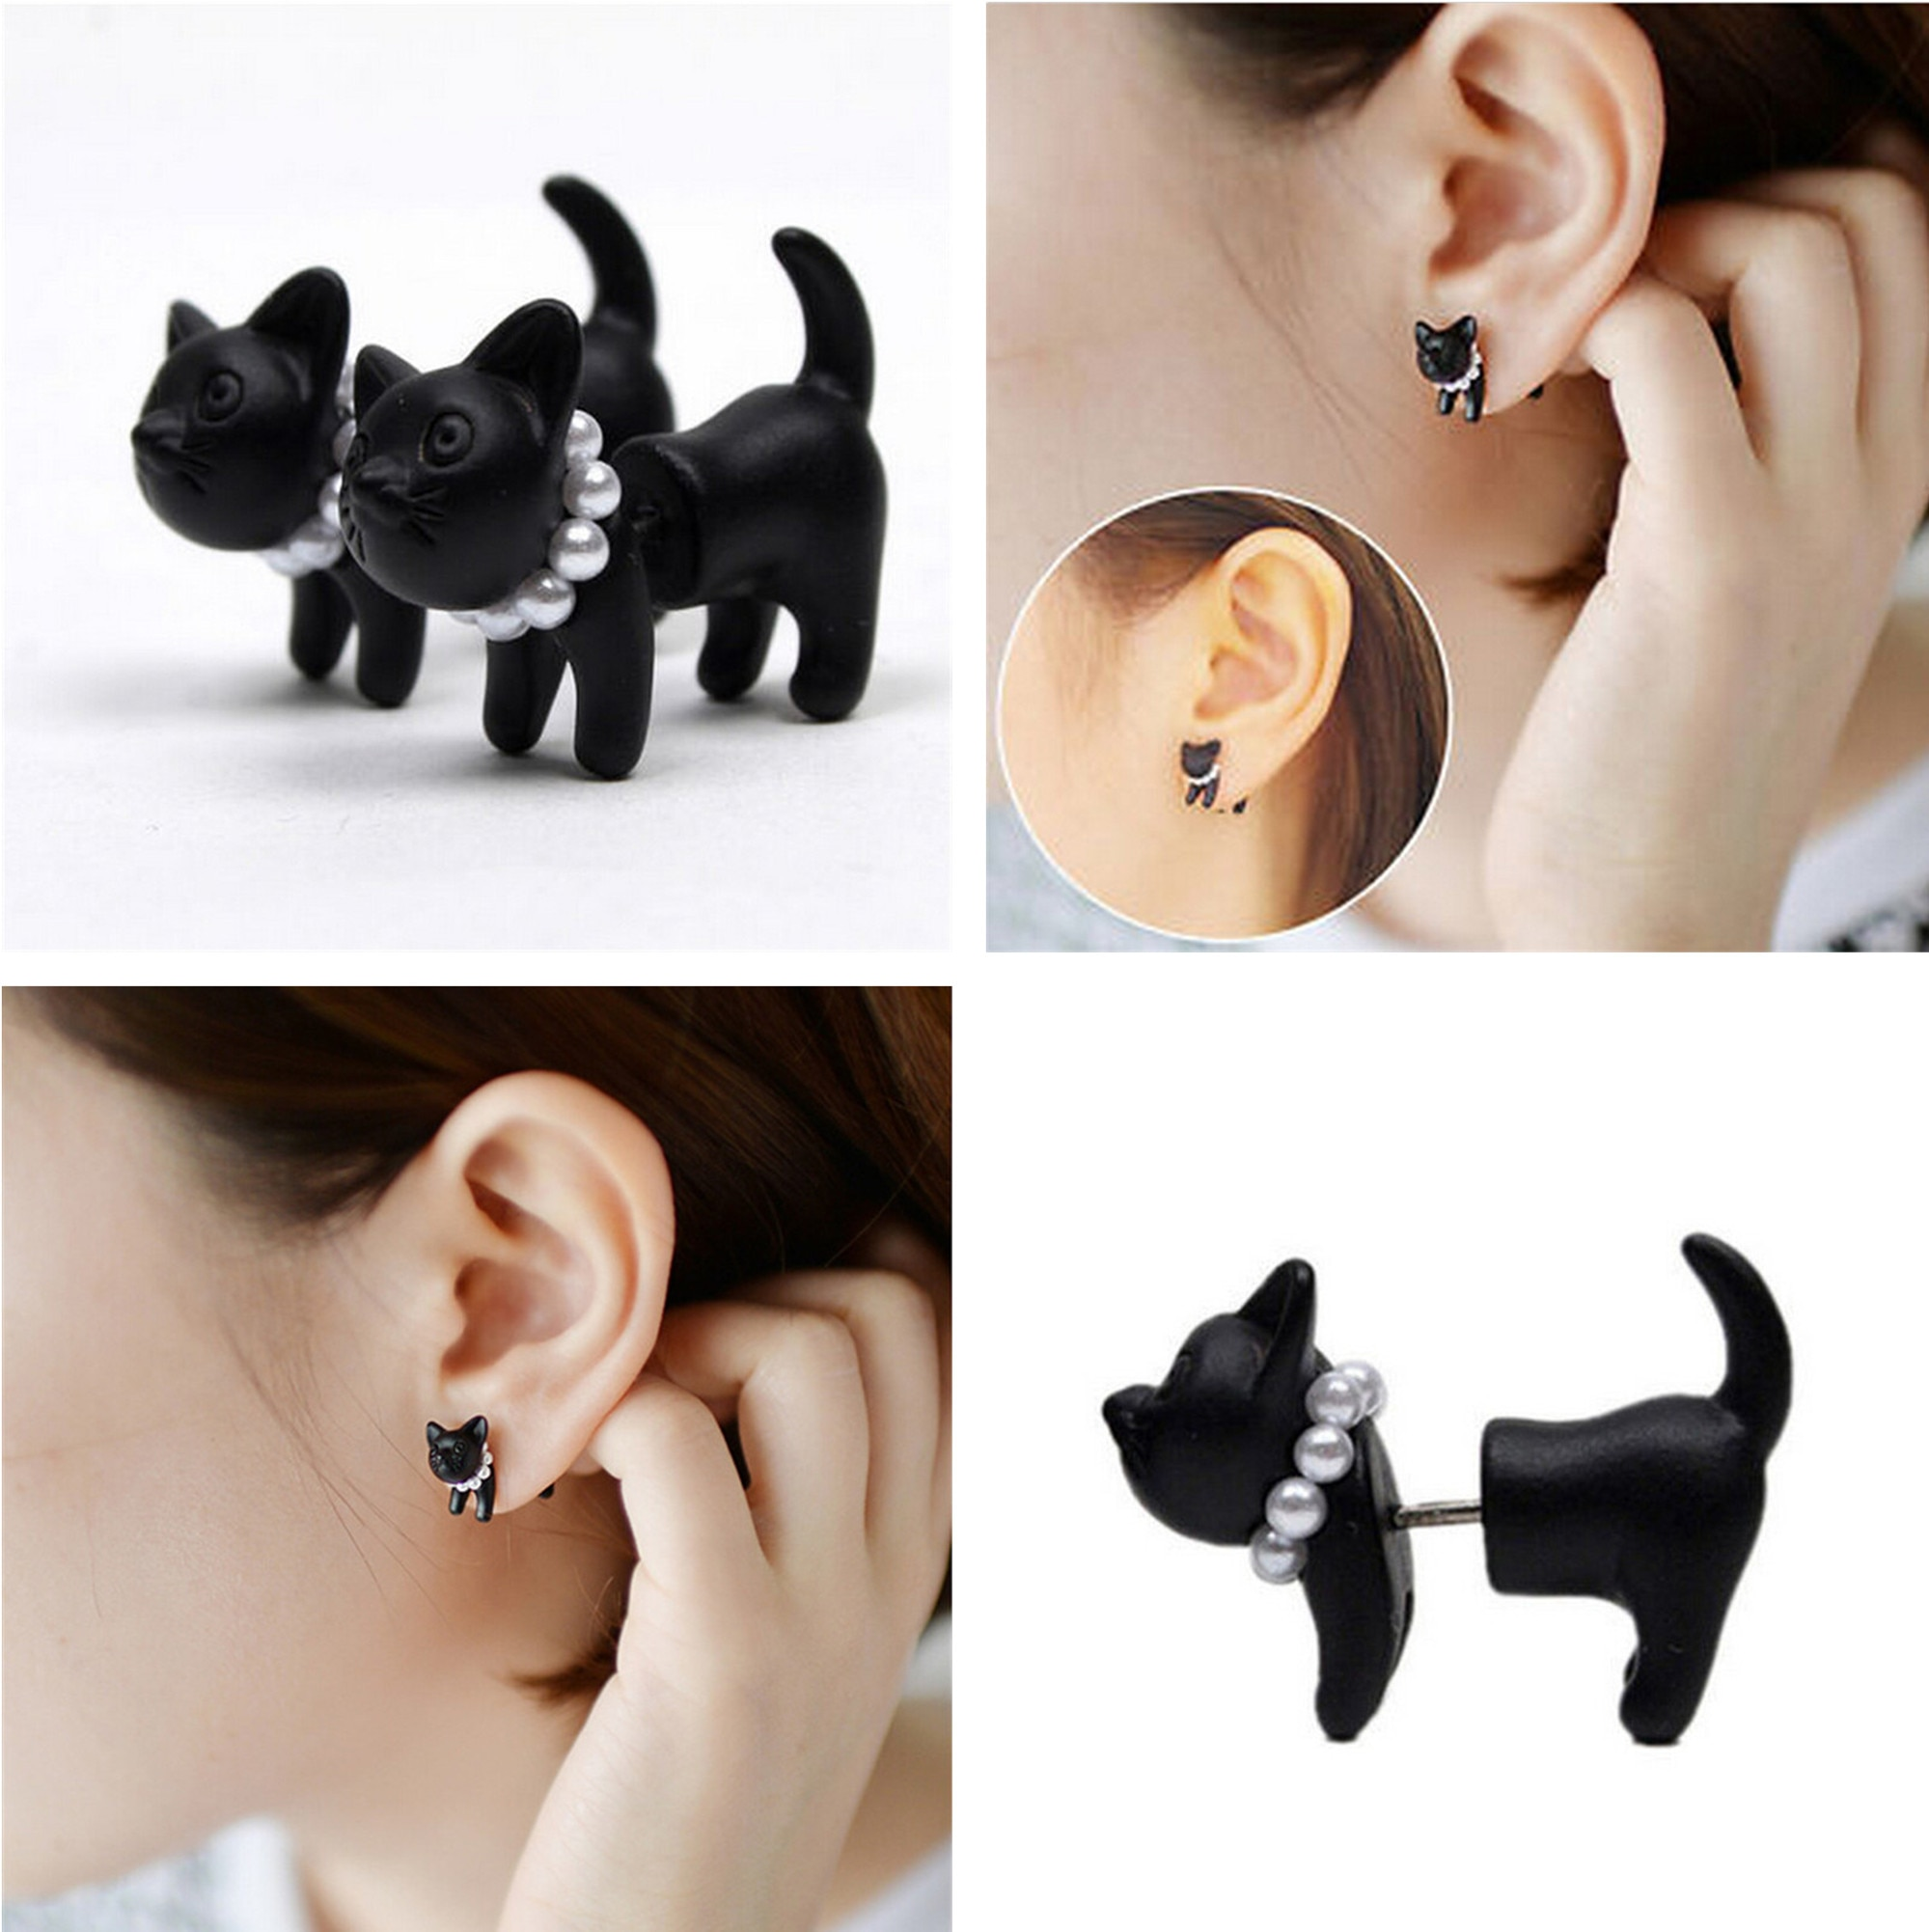 Creative 3D Animal Earrings Cartoon Kitten Lovely Ear Stud Earrings Jewelry For Women Girls Female M